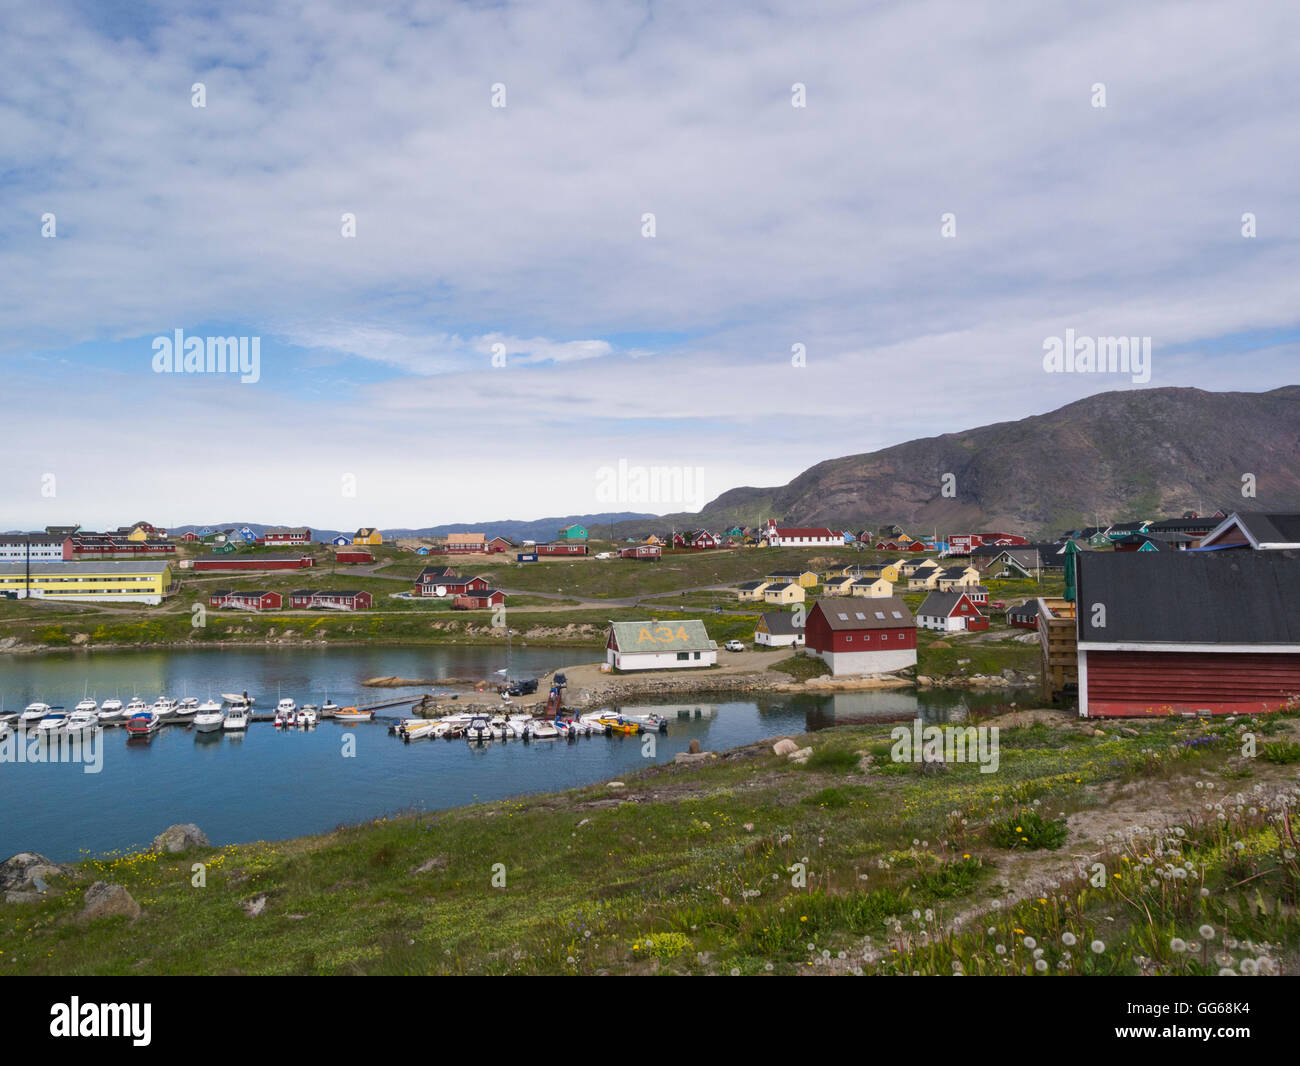 View across Tunulliarfik Fjord headland to Narsaq History Museum buildings with moored fishing boats Southern Greenland Stock Photo